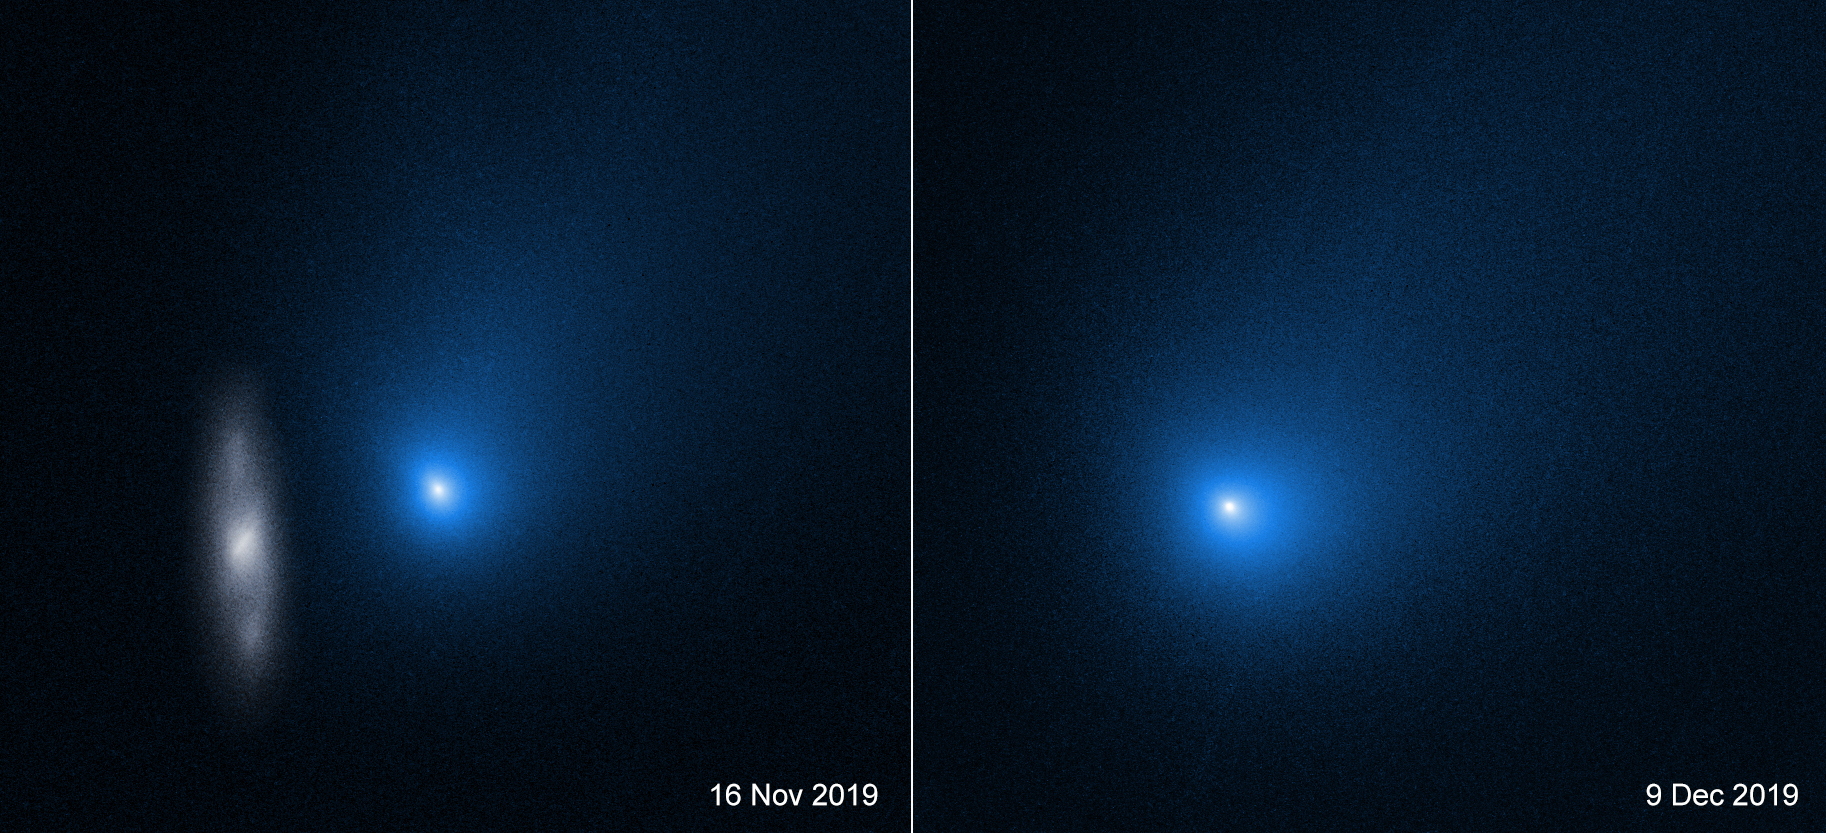 Interstellar Comet 2I Borisov